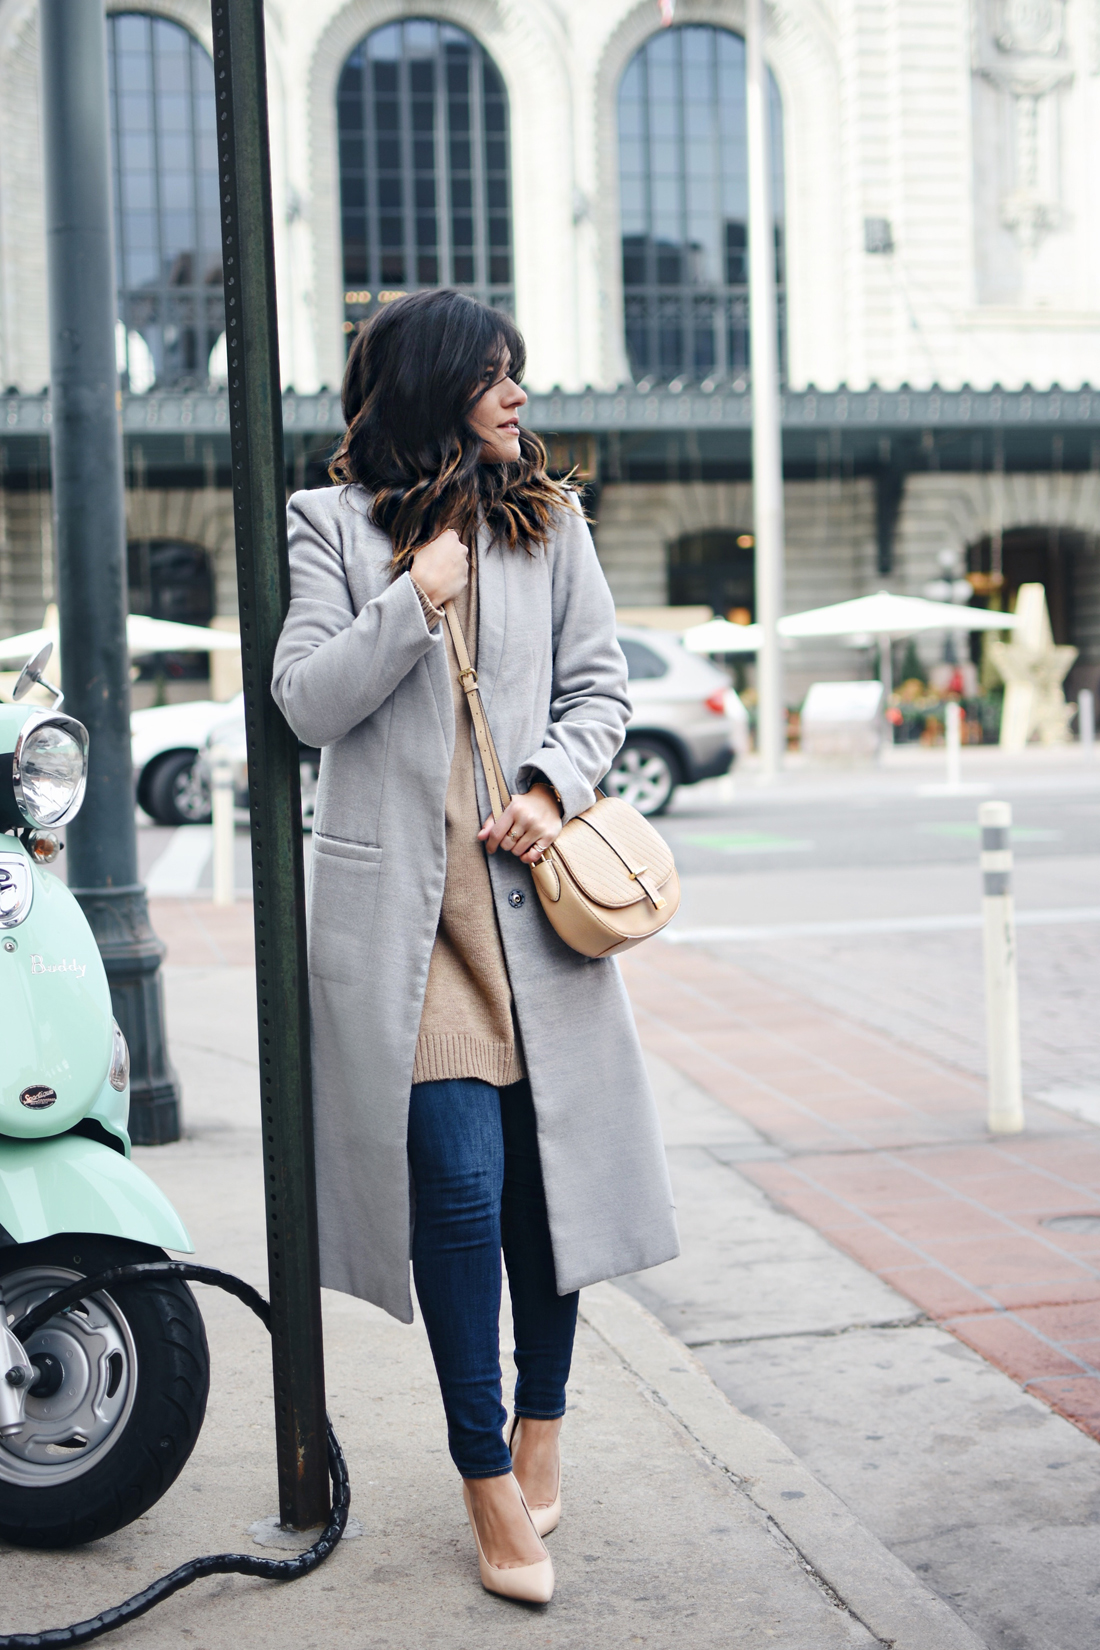 Carolina Hellal of Chic Talk wearing a Shein gray long coat, Paige skinny jeans, Calvin Klein bag, NA-KD sweater, and Sam Edelman Shoes.